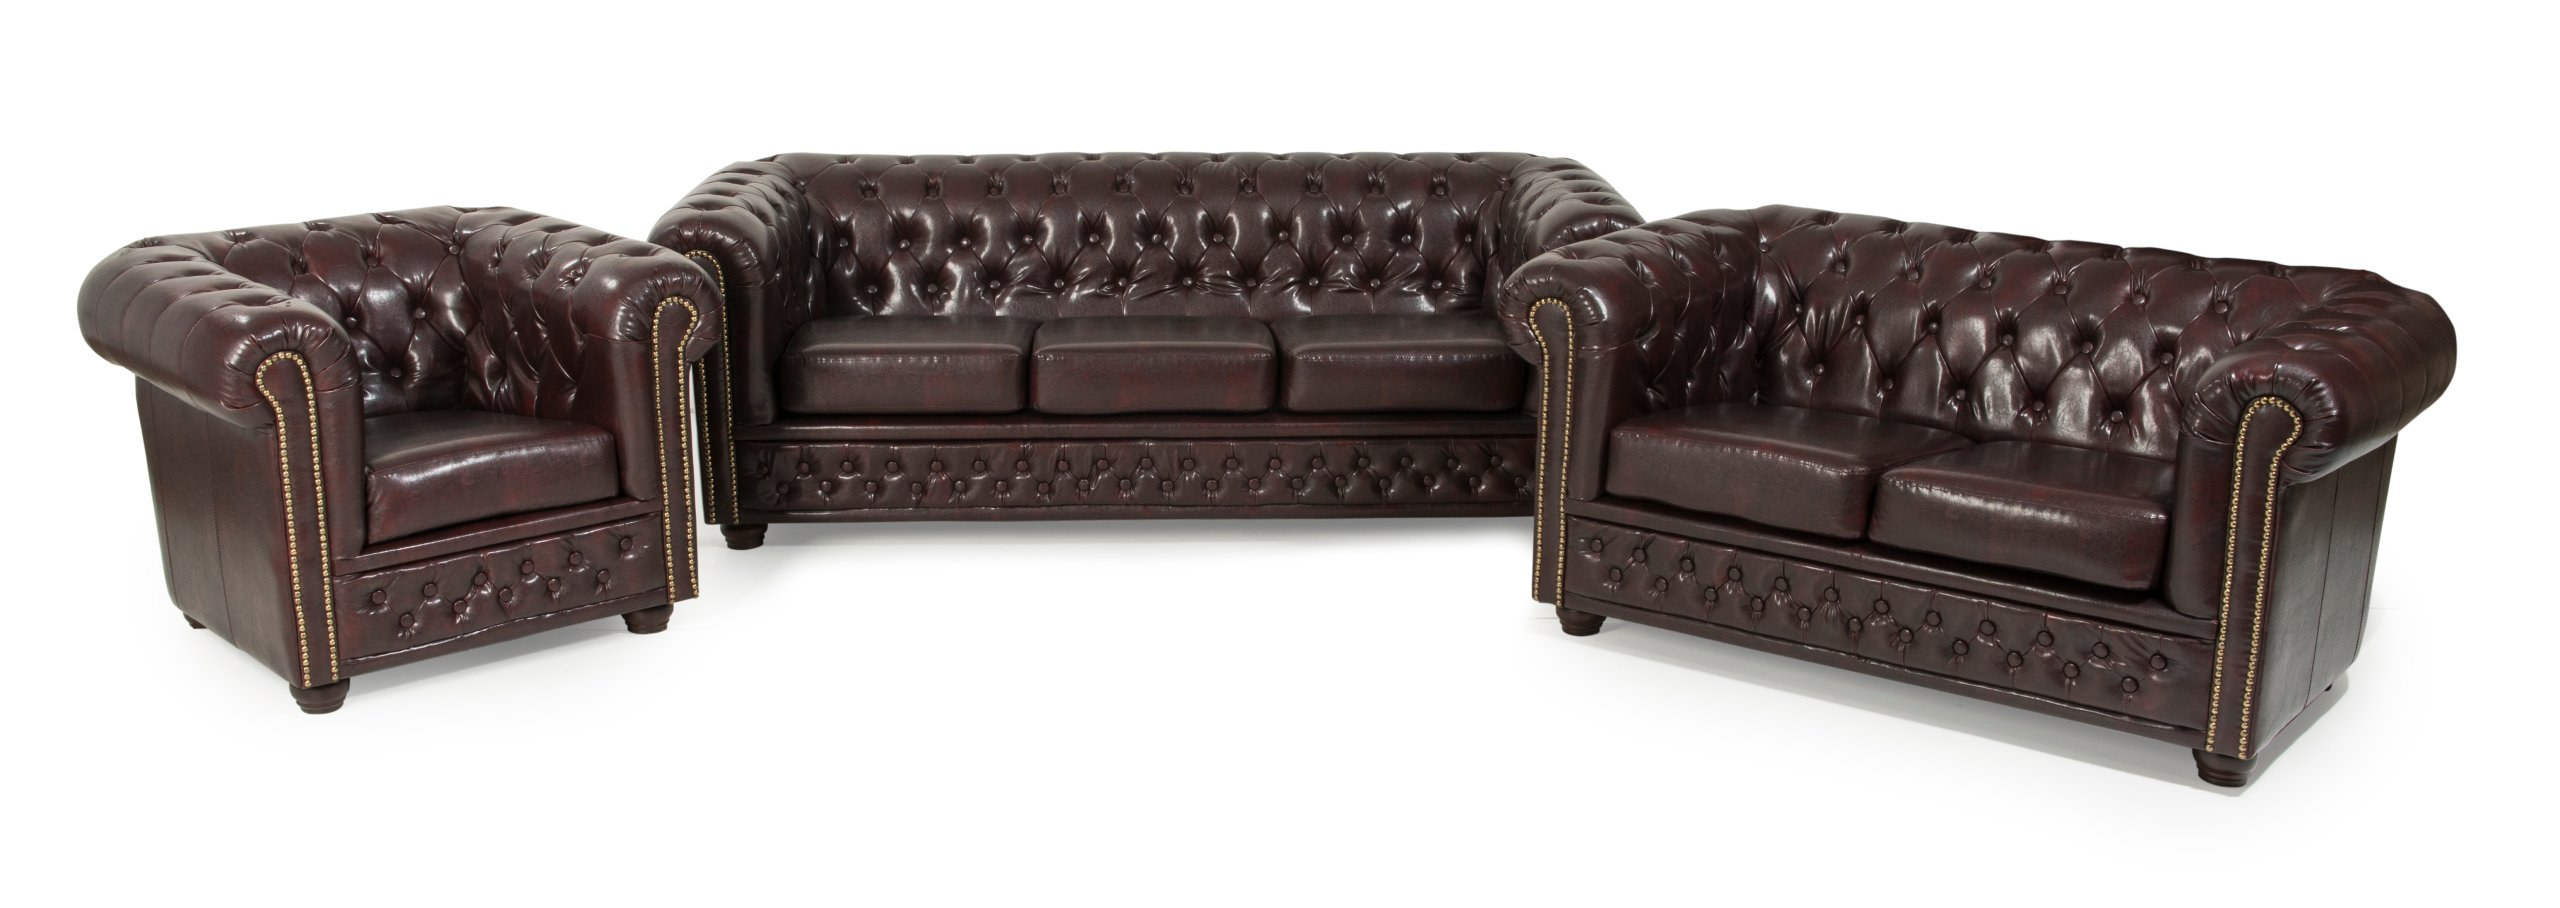 chesterfield sofa 3 2er sitzer sessel hocker bettsofa dunkelbraun kunstleder ebay. Black Bedroom Furniture Sets. Home Design Ideas